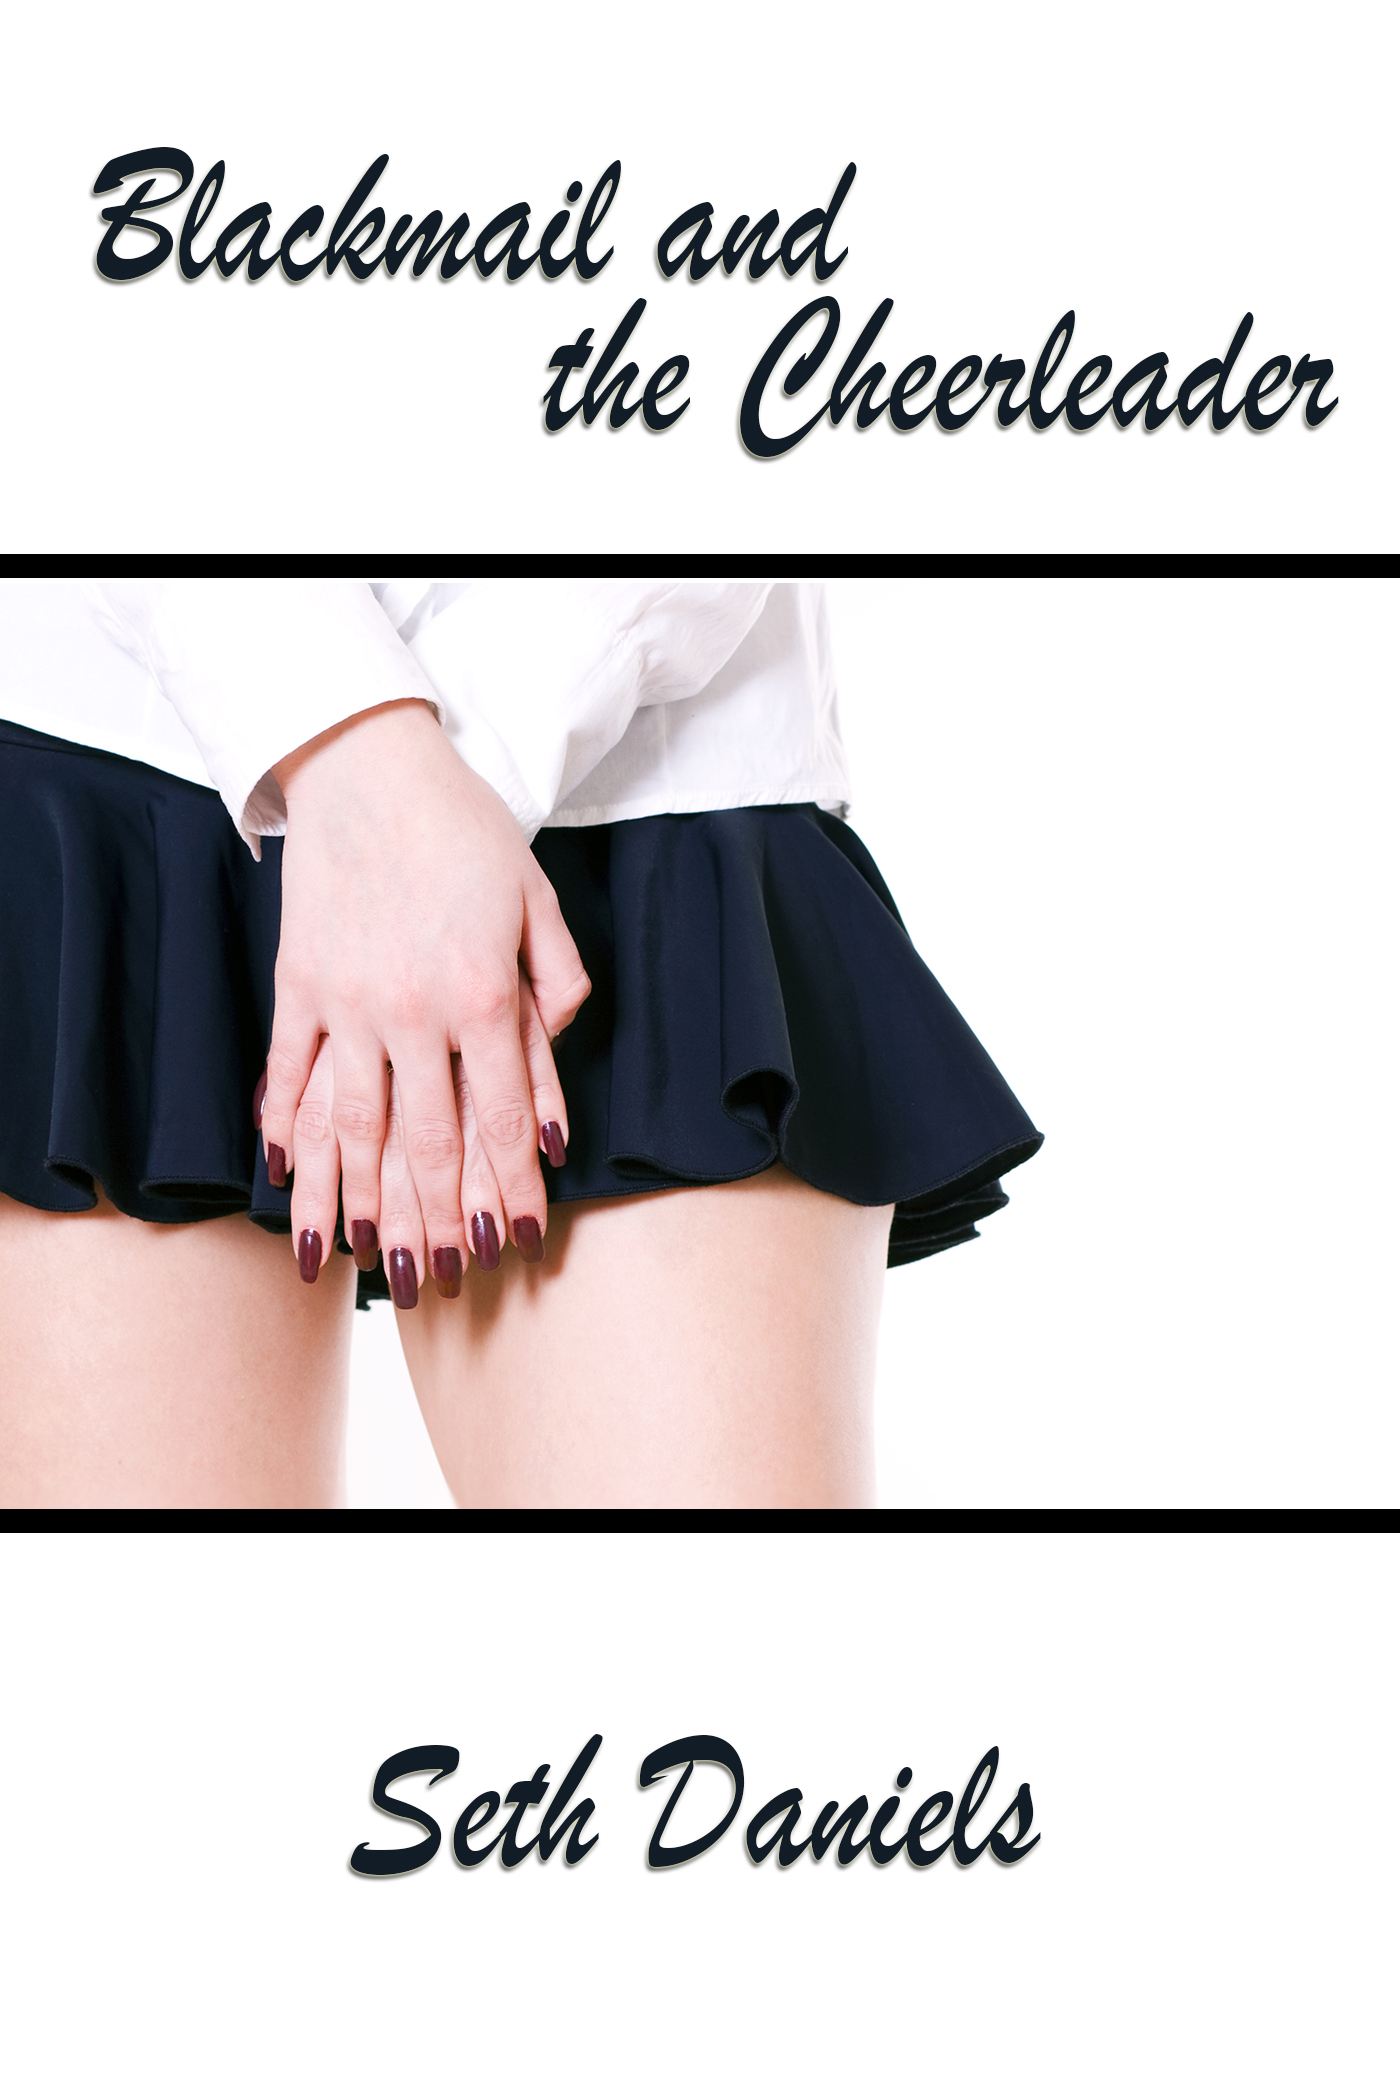 Blackmail and the Cheerleader